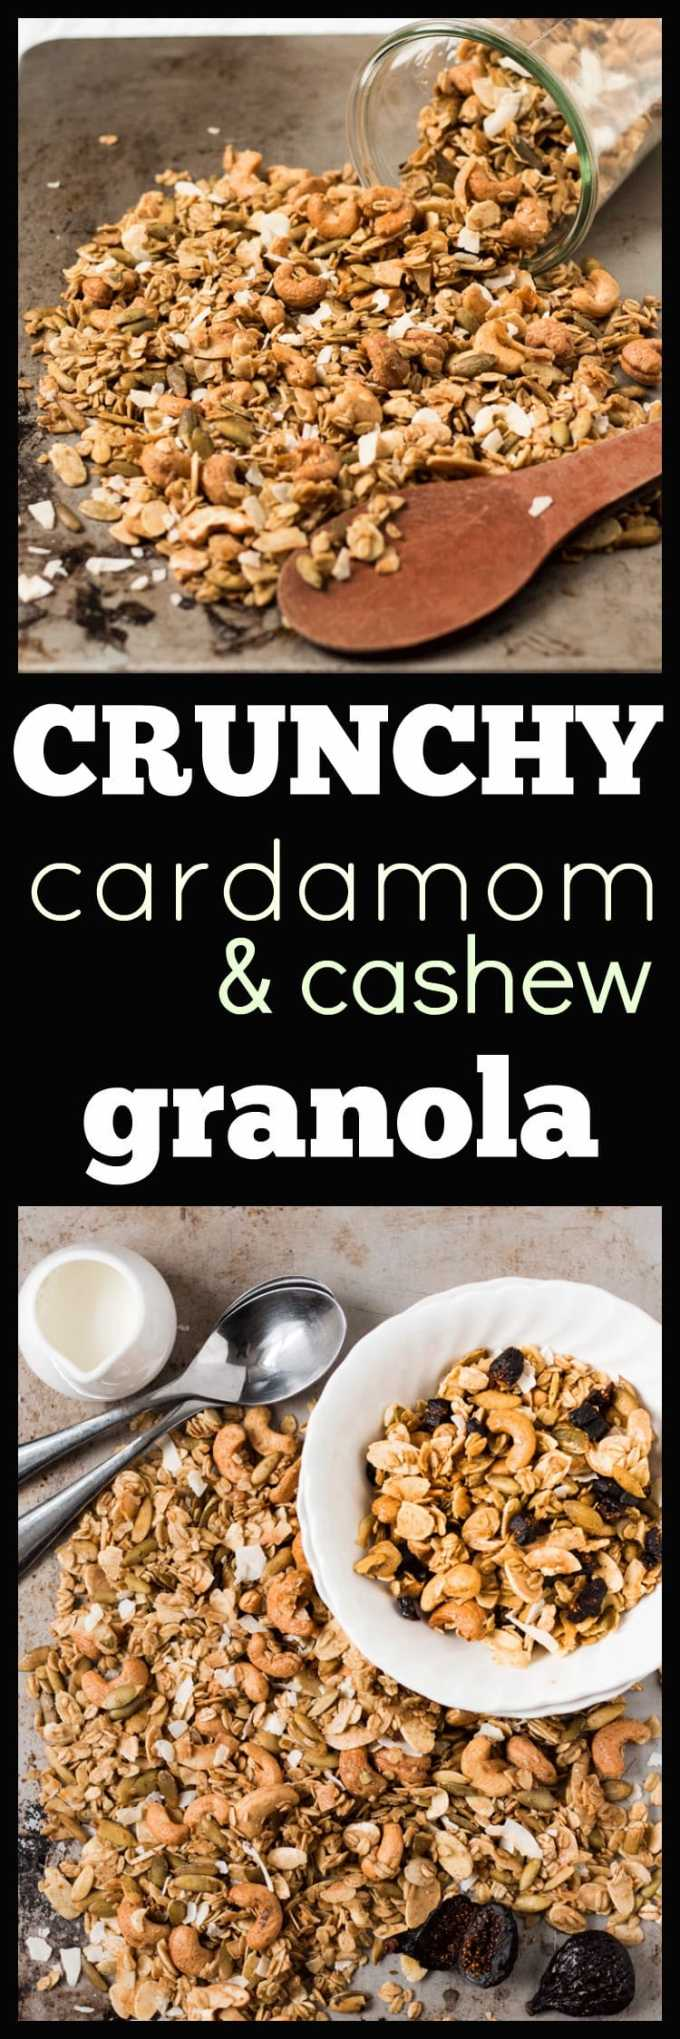 Cardamom and Cashew Granola. Slightly spicy from the cardamom, slightly sweet from the maple syrup, lots of crunchy from the nuts and seeds.